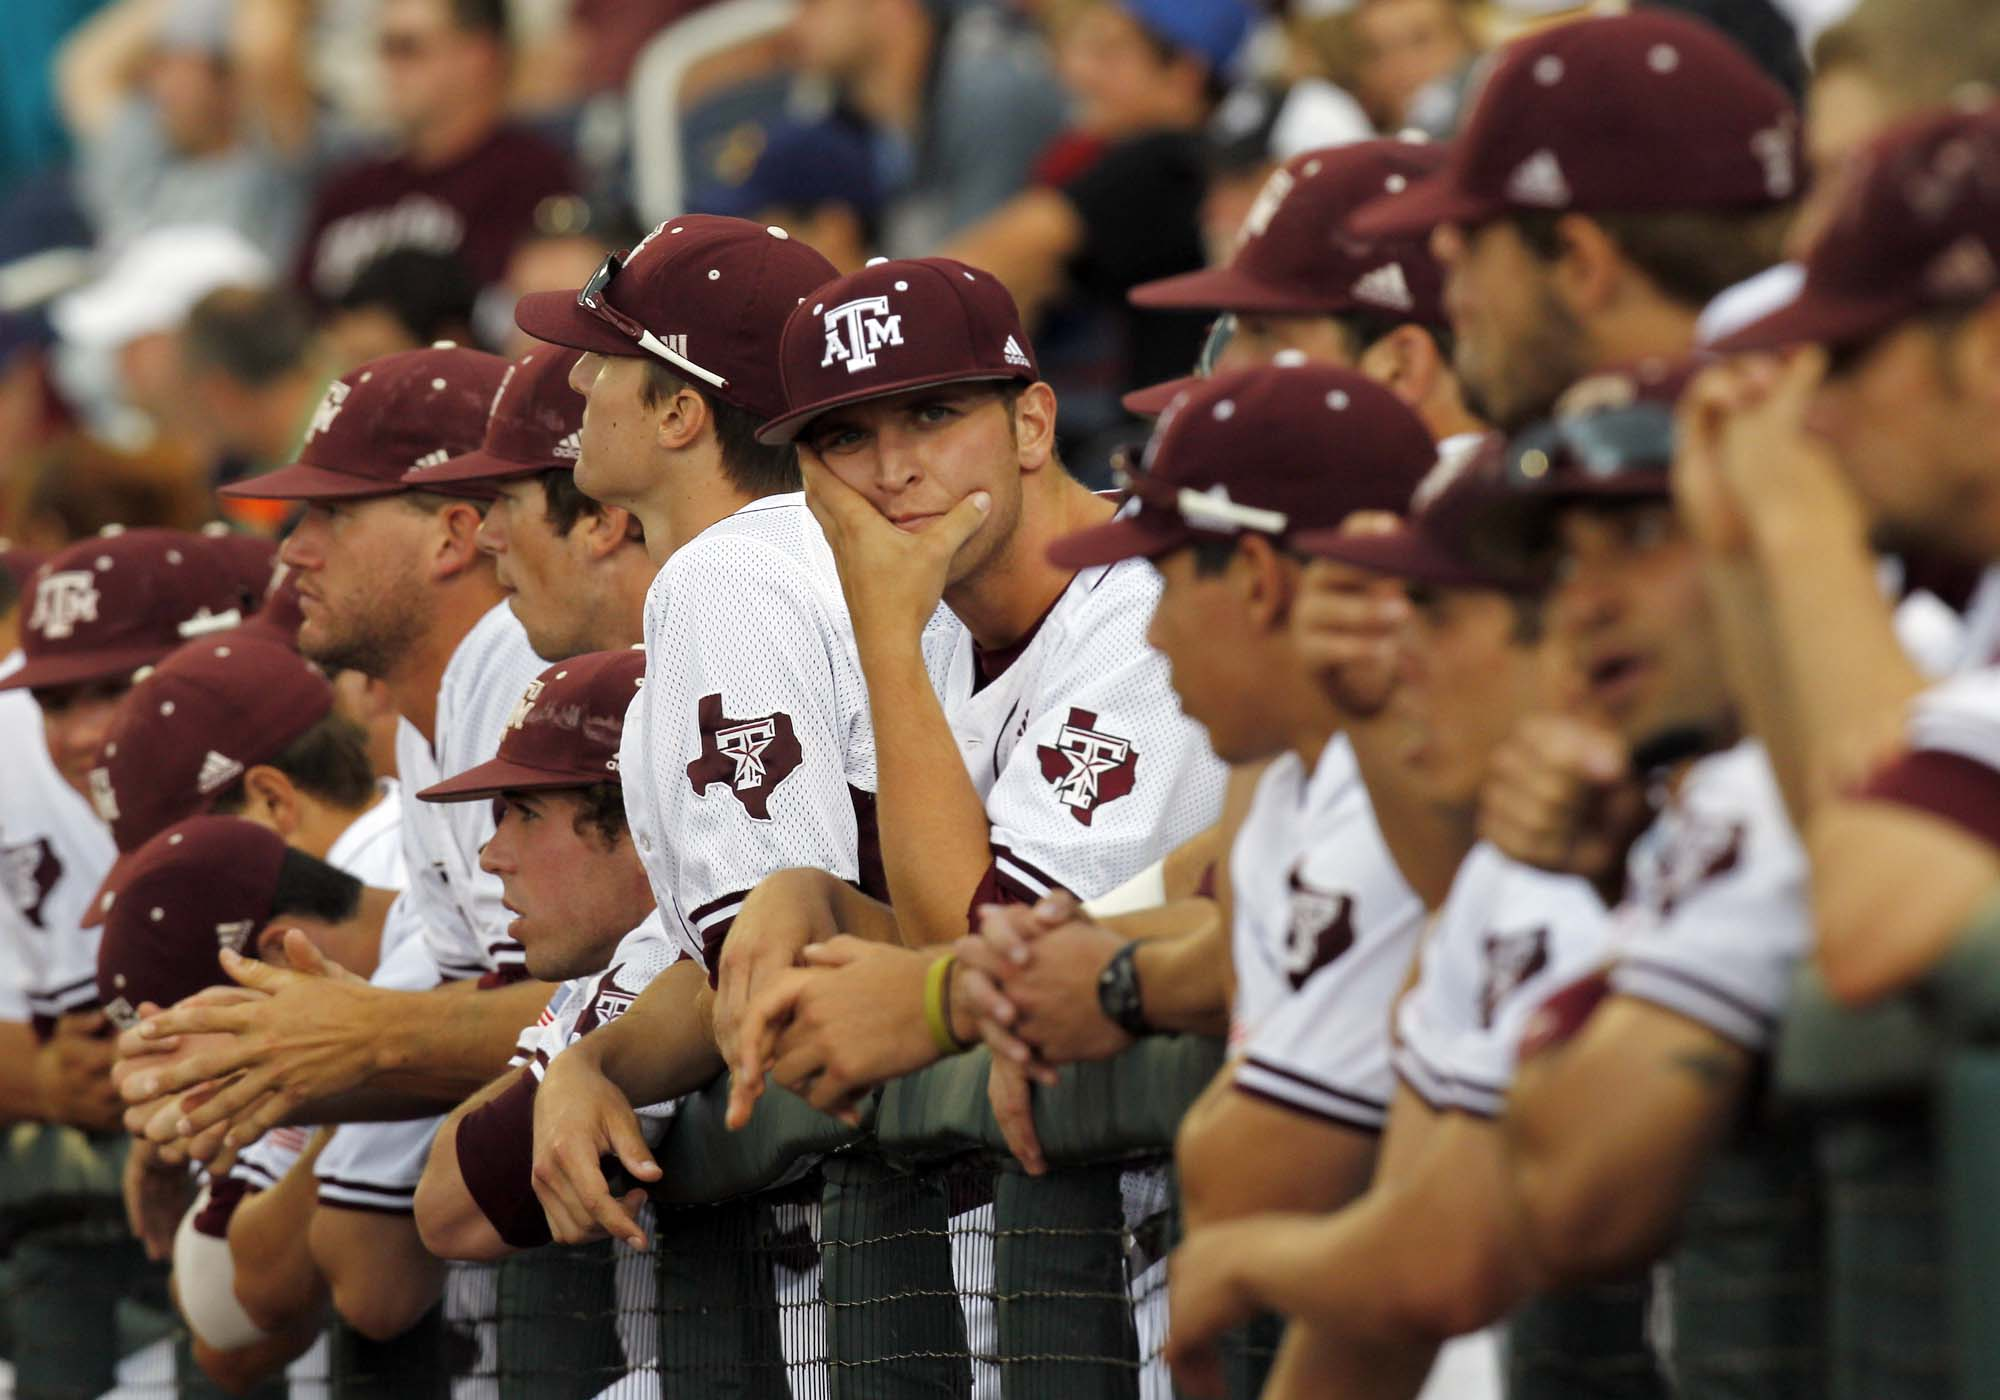 The Aggies are off to a school best 16-0 start, also the best record in the nation